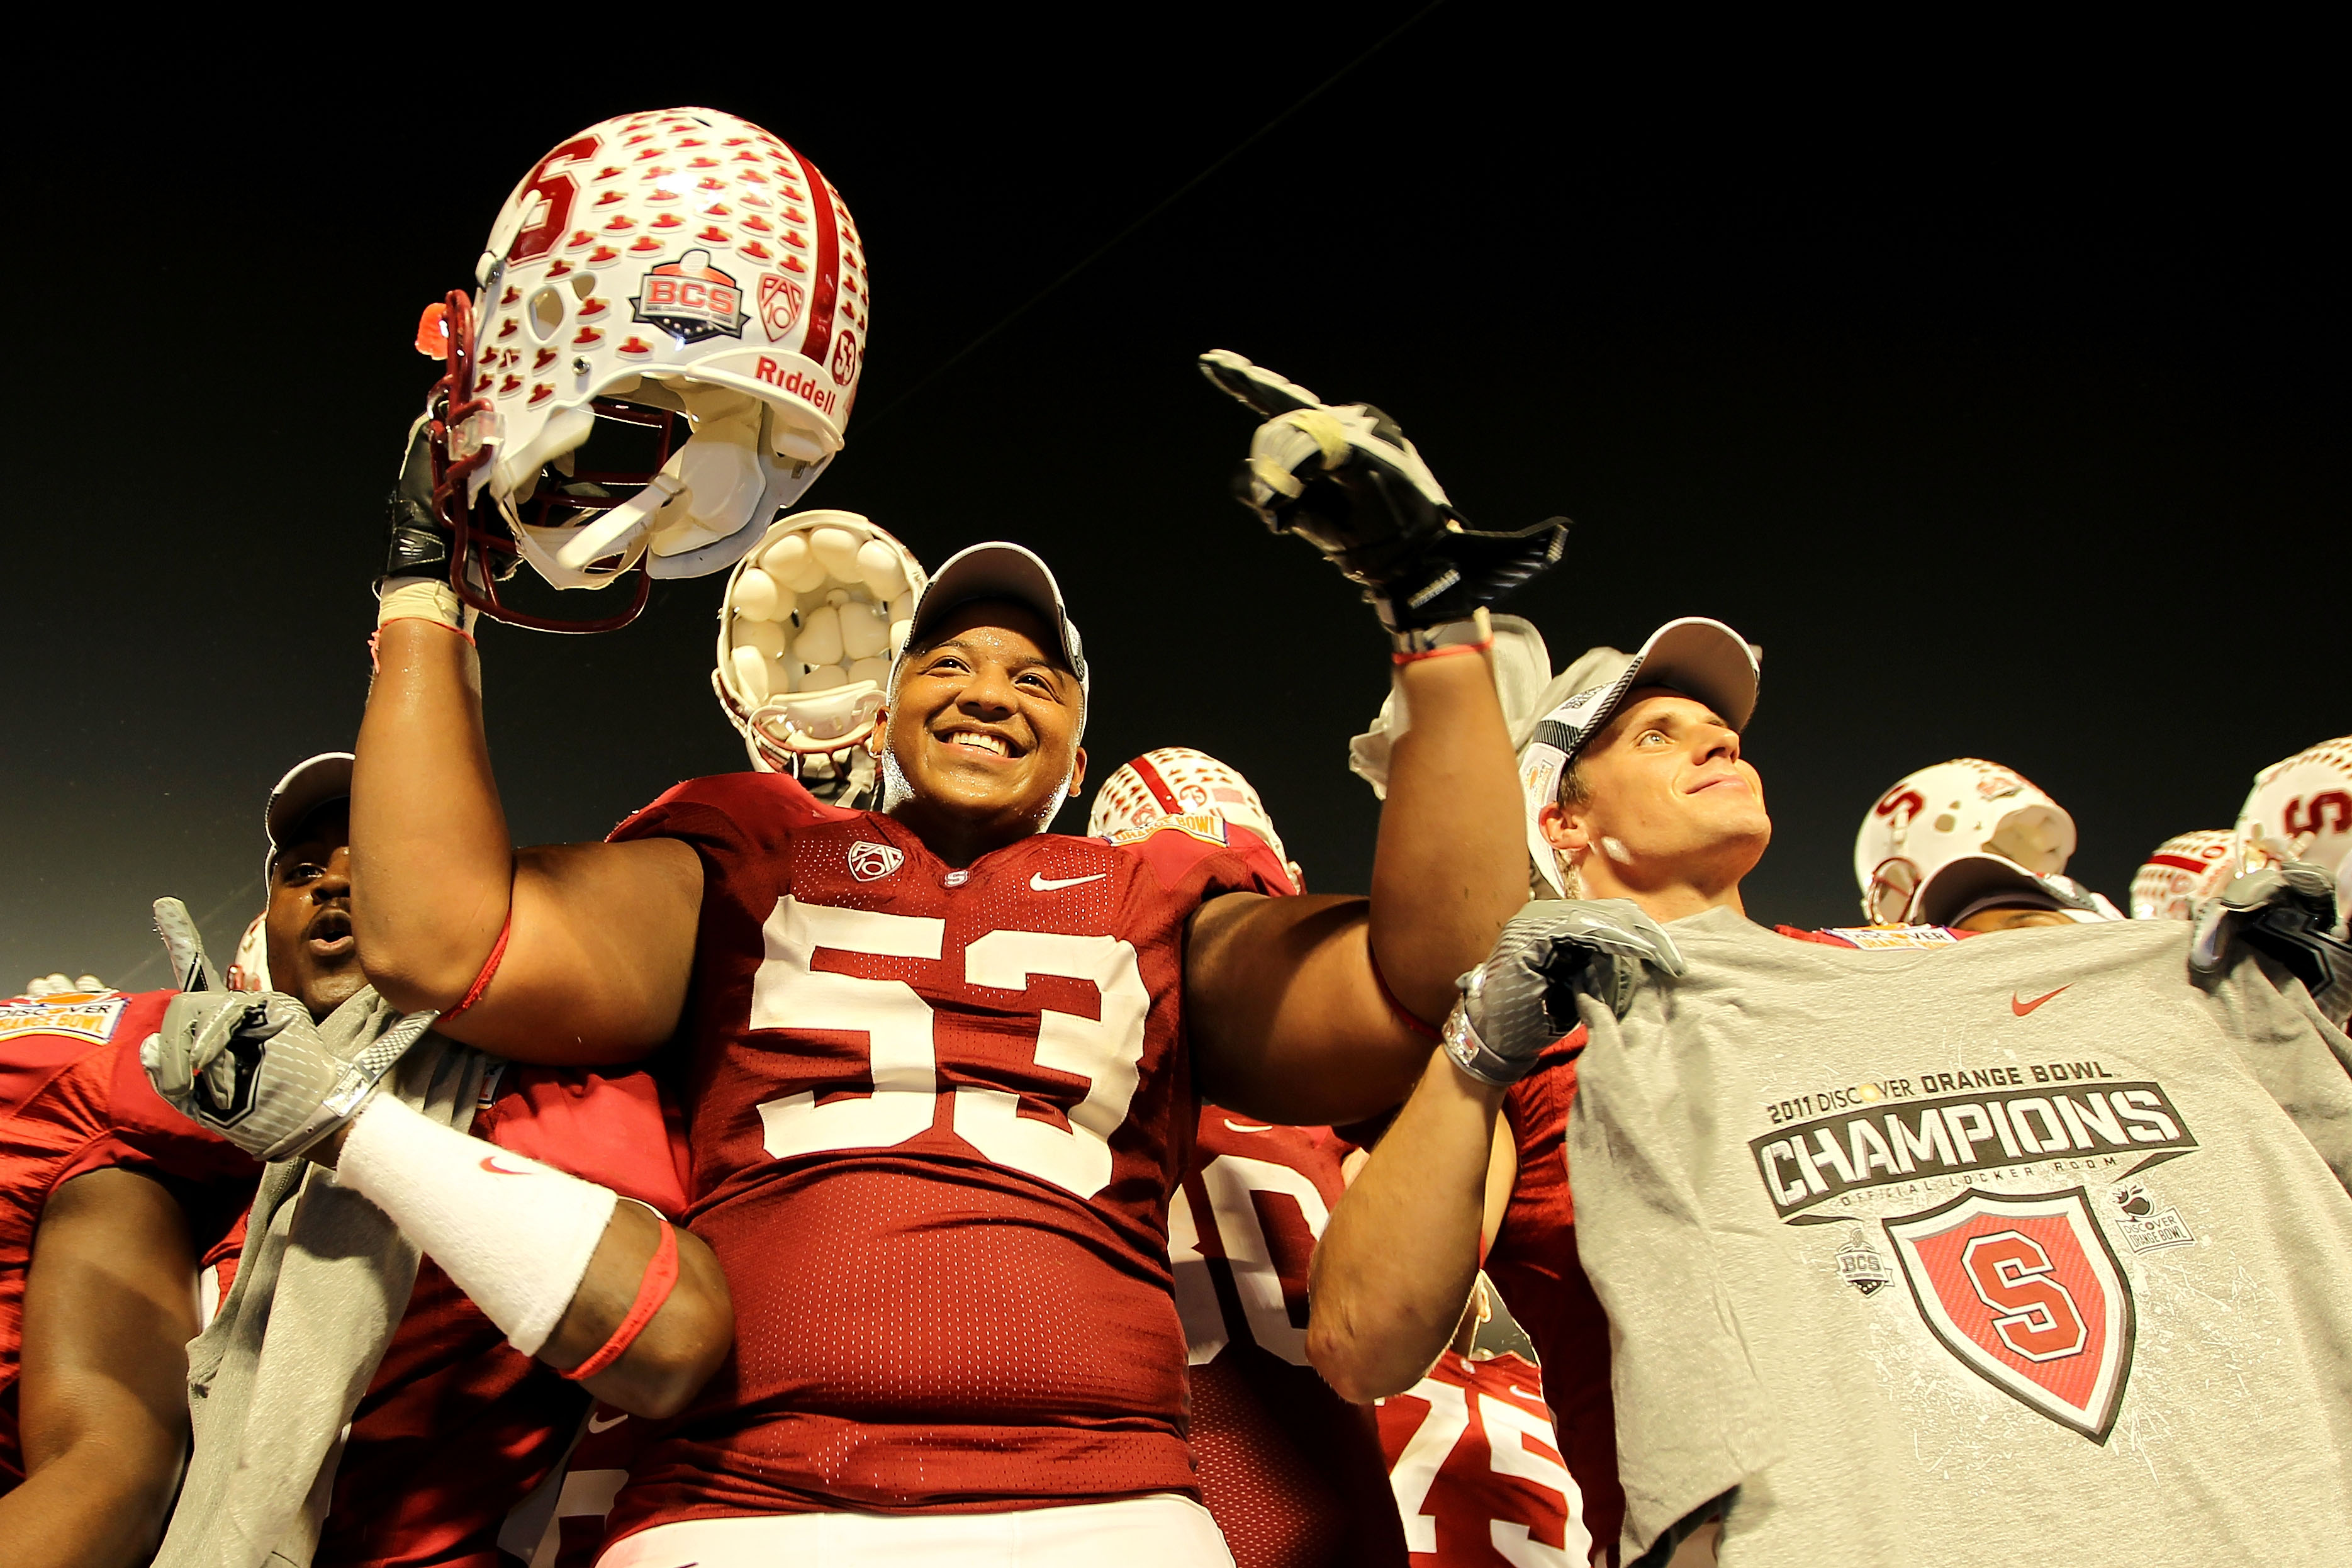 MIAMI, FL - JANUARY 03: Derek Hall #53 of the Stanford Cardinal celebrates with teammates after Stanford won 40-12 against the Virginia Tech Hokies during the 2011 Discover Orange Bowl at Sun Life Stadium on January 3, 2011 in Miami, Florida. (Photo by Mi